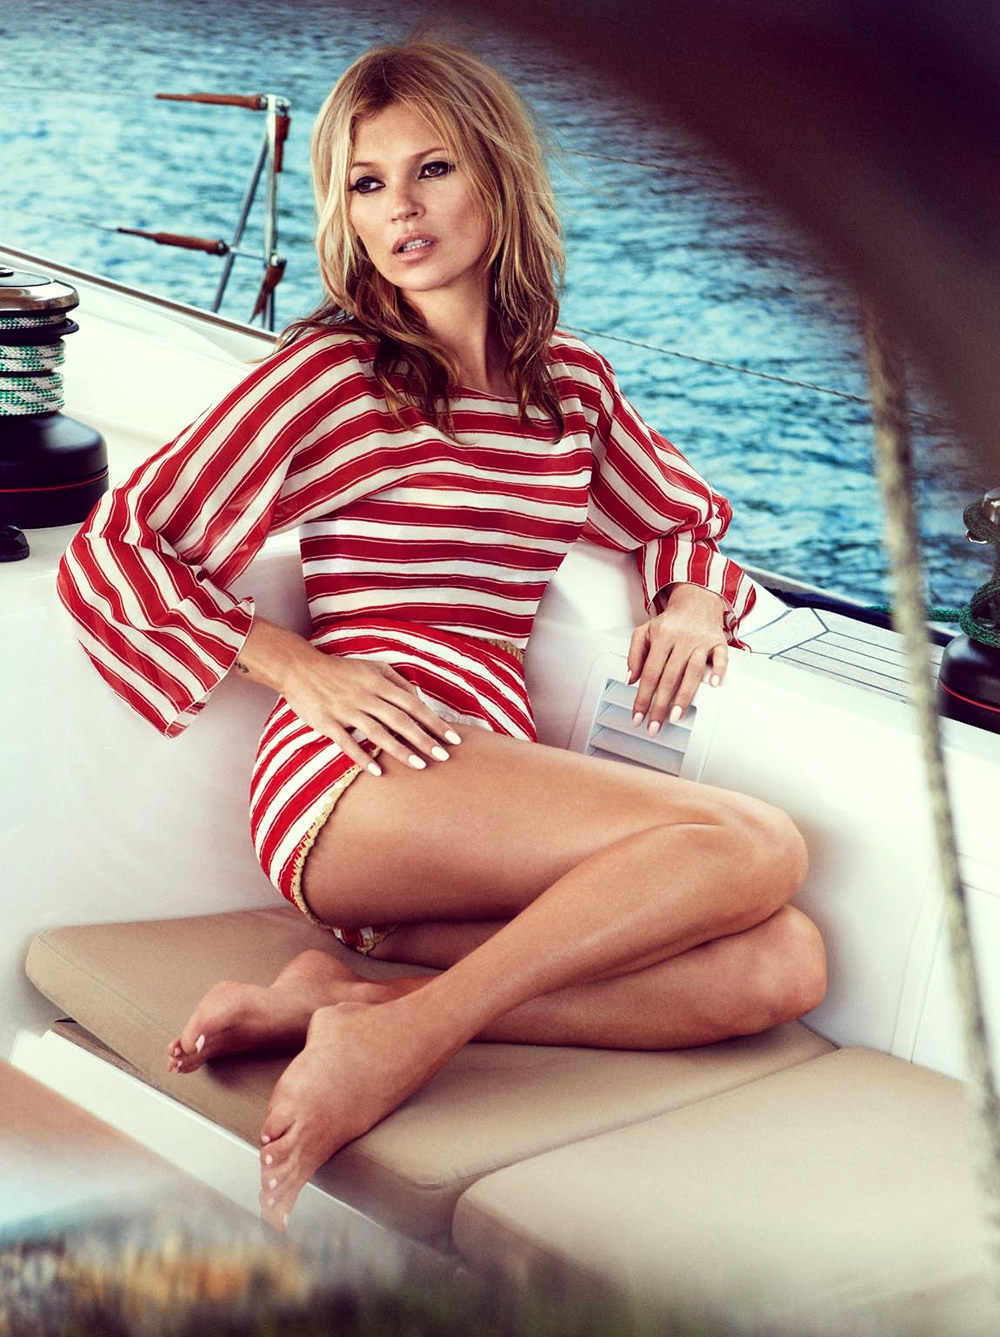 Kate-Moss-by-Patrick-Demarchelier-for-Vogue-UK-June-2013-8